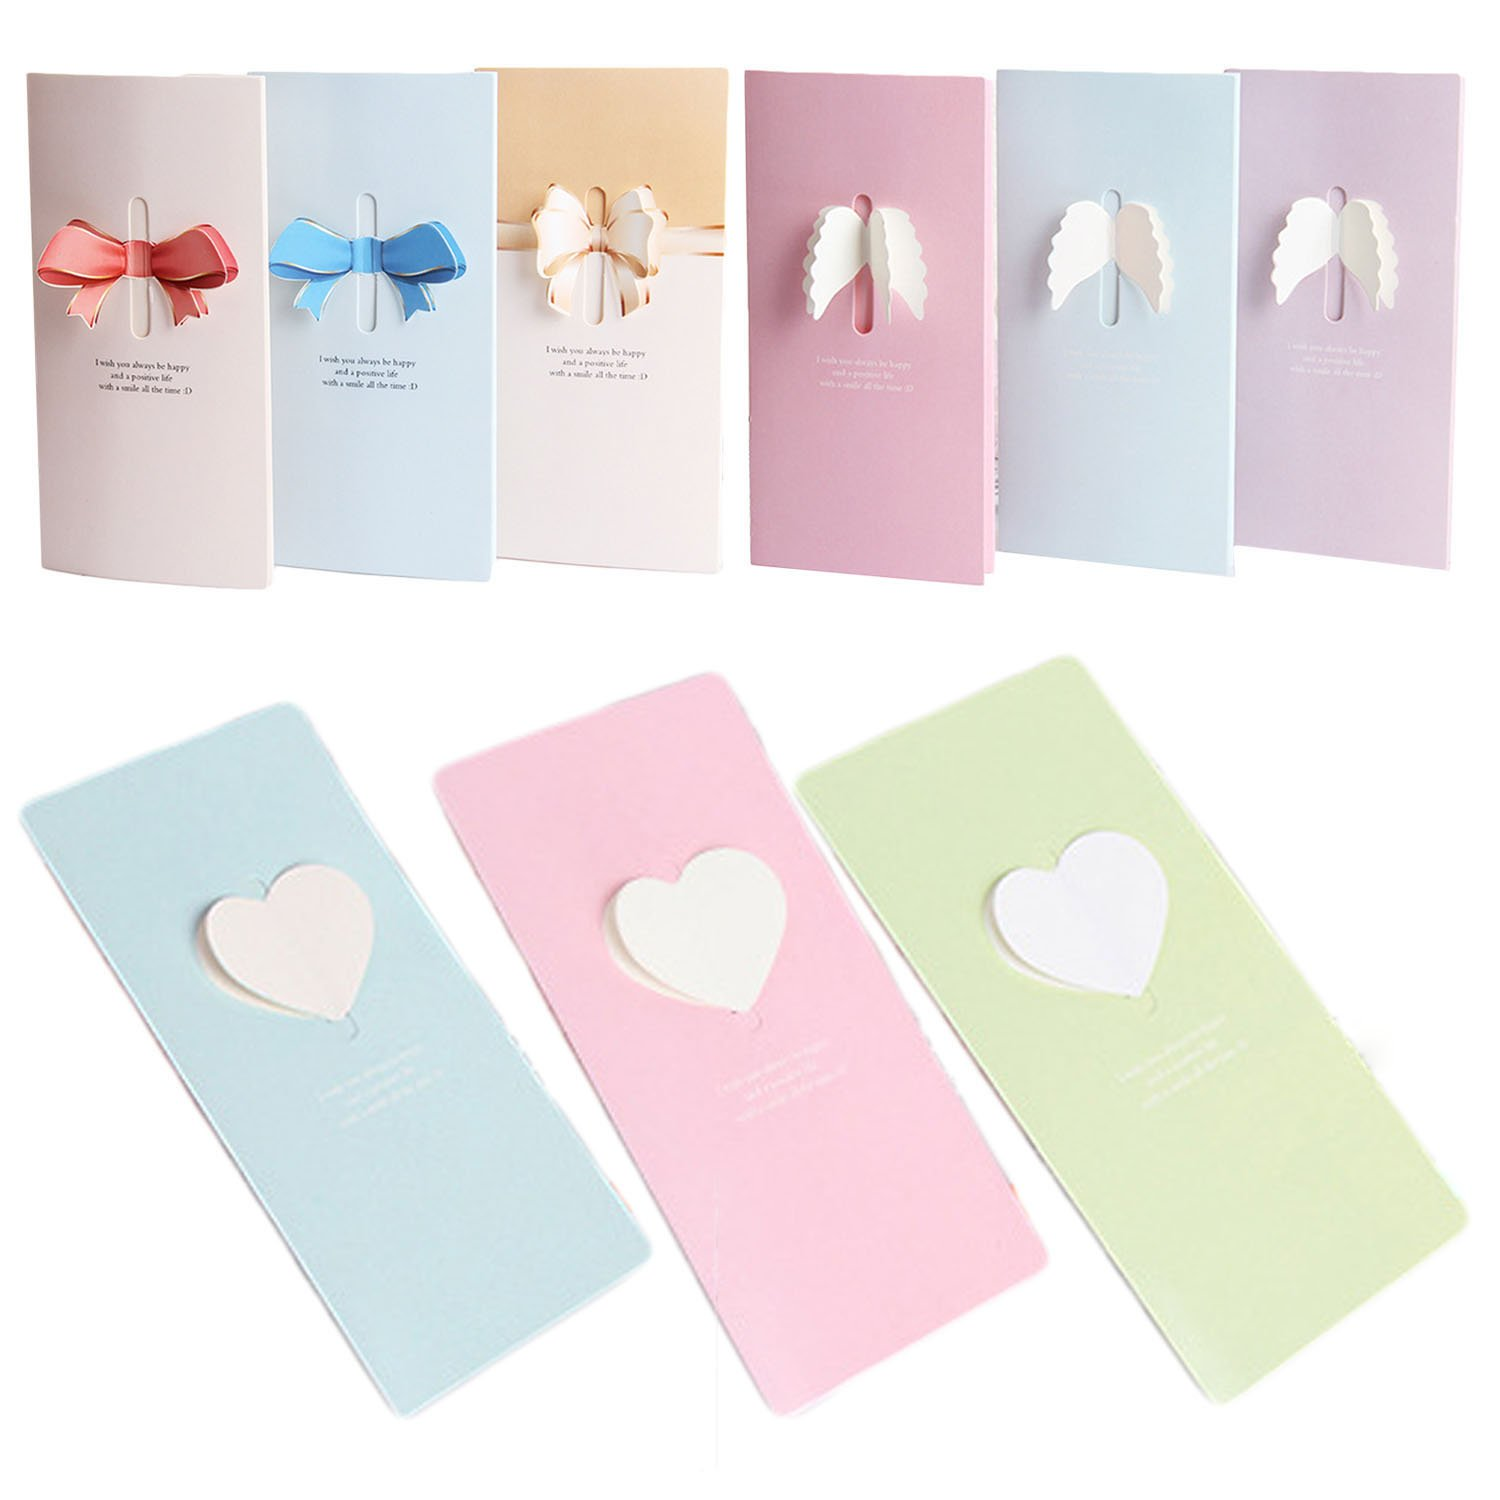 Ai-life 18Pcs 3D Pop Up Assorted Design and Color Lined Greeting Cards Thank You Note Cards with Envelopes, Folding Gift Cards for Wedding, Graduation, Bridal and Baby Shower, Blessing, Birthday, Valentine and Christmas, 16x8cm